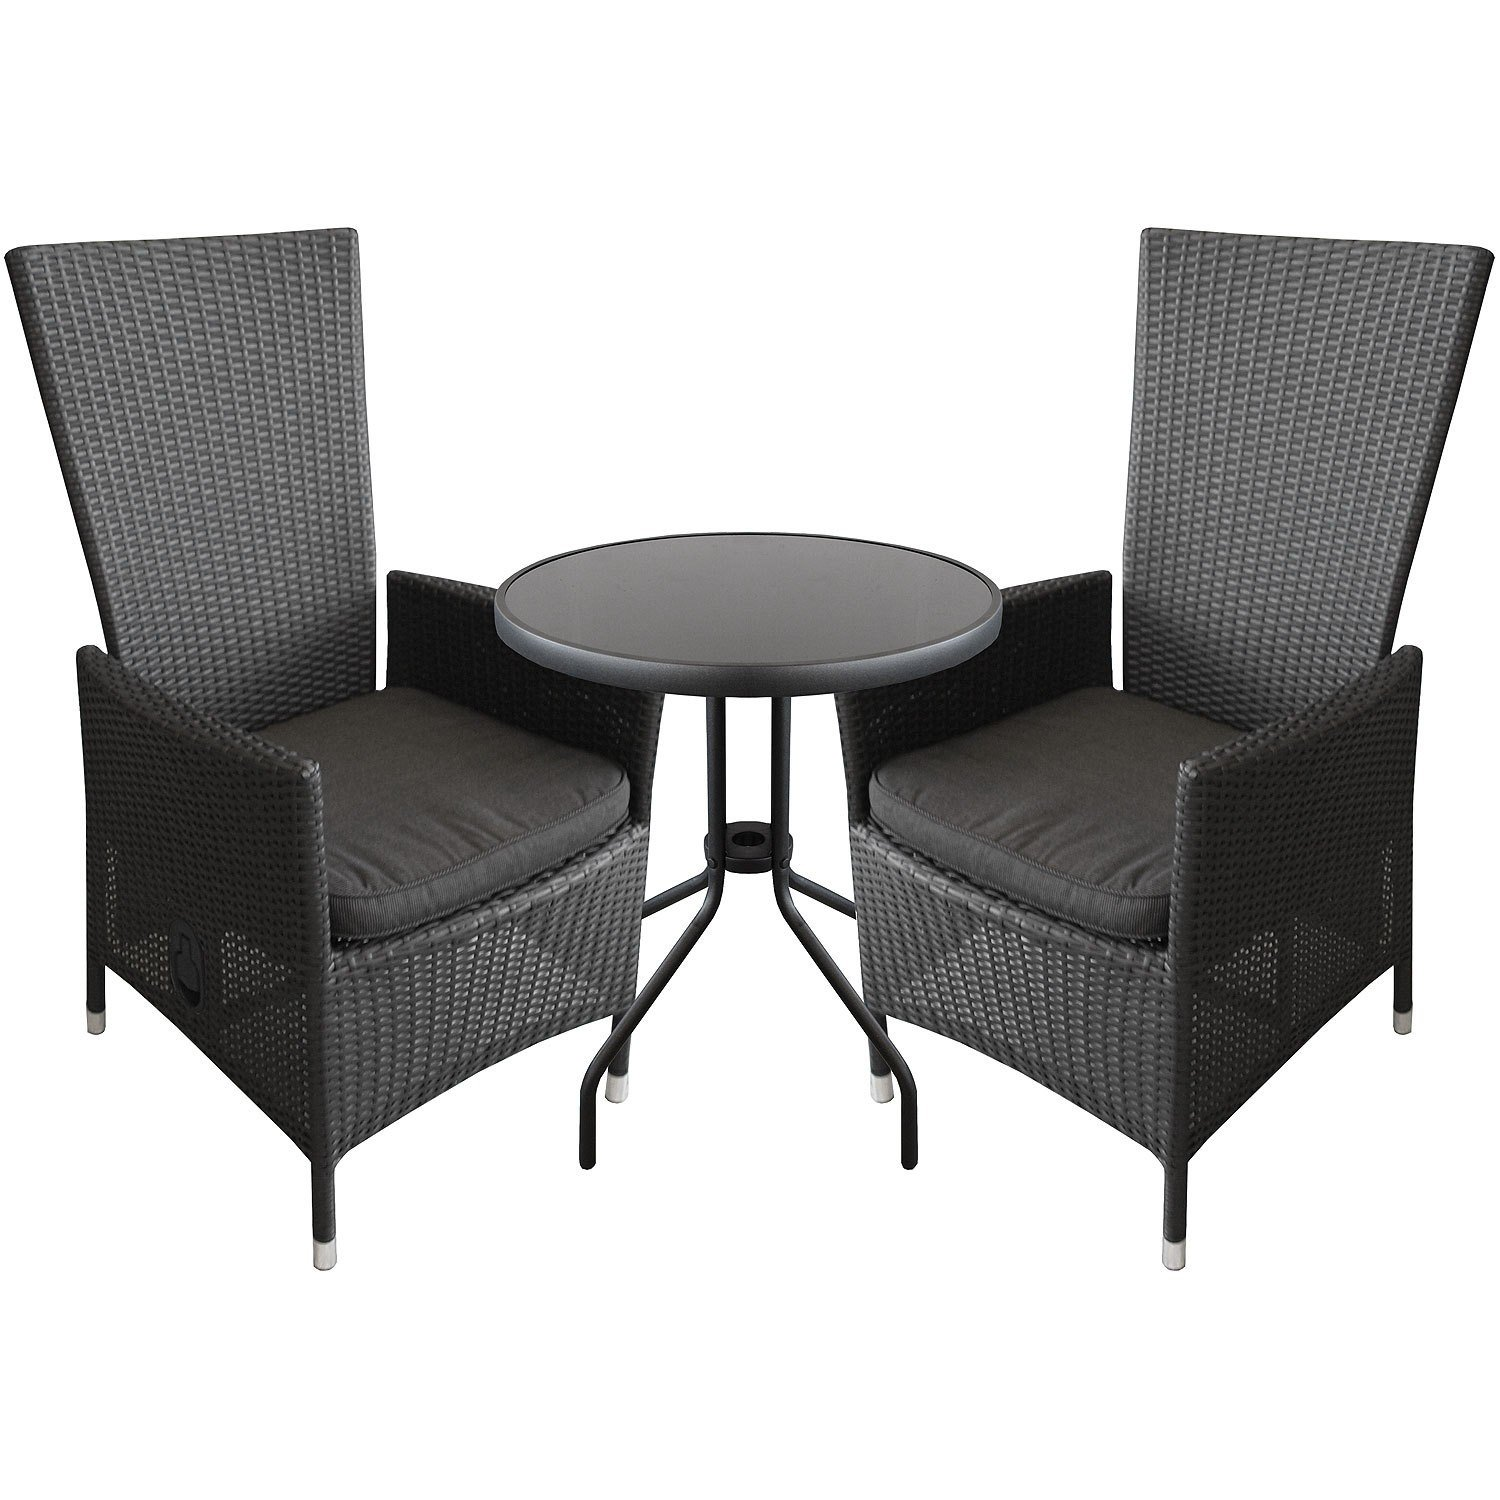 3tlg bistrogarnitur bistro set balkonm bel bistrotisch 60cm alu poly rattan sessel inkl. Black Bedroom Furniture Sets. Home Design Ideas